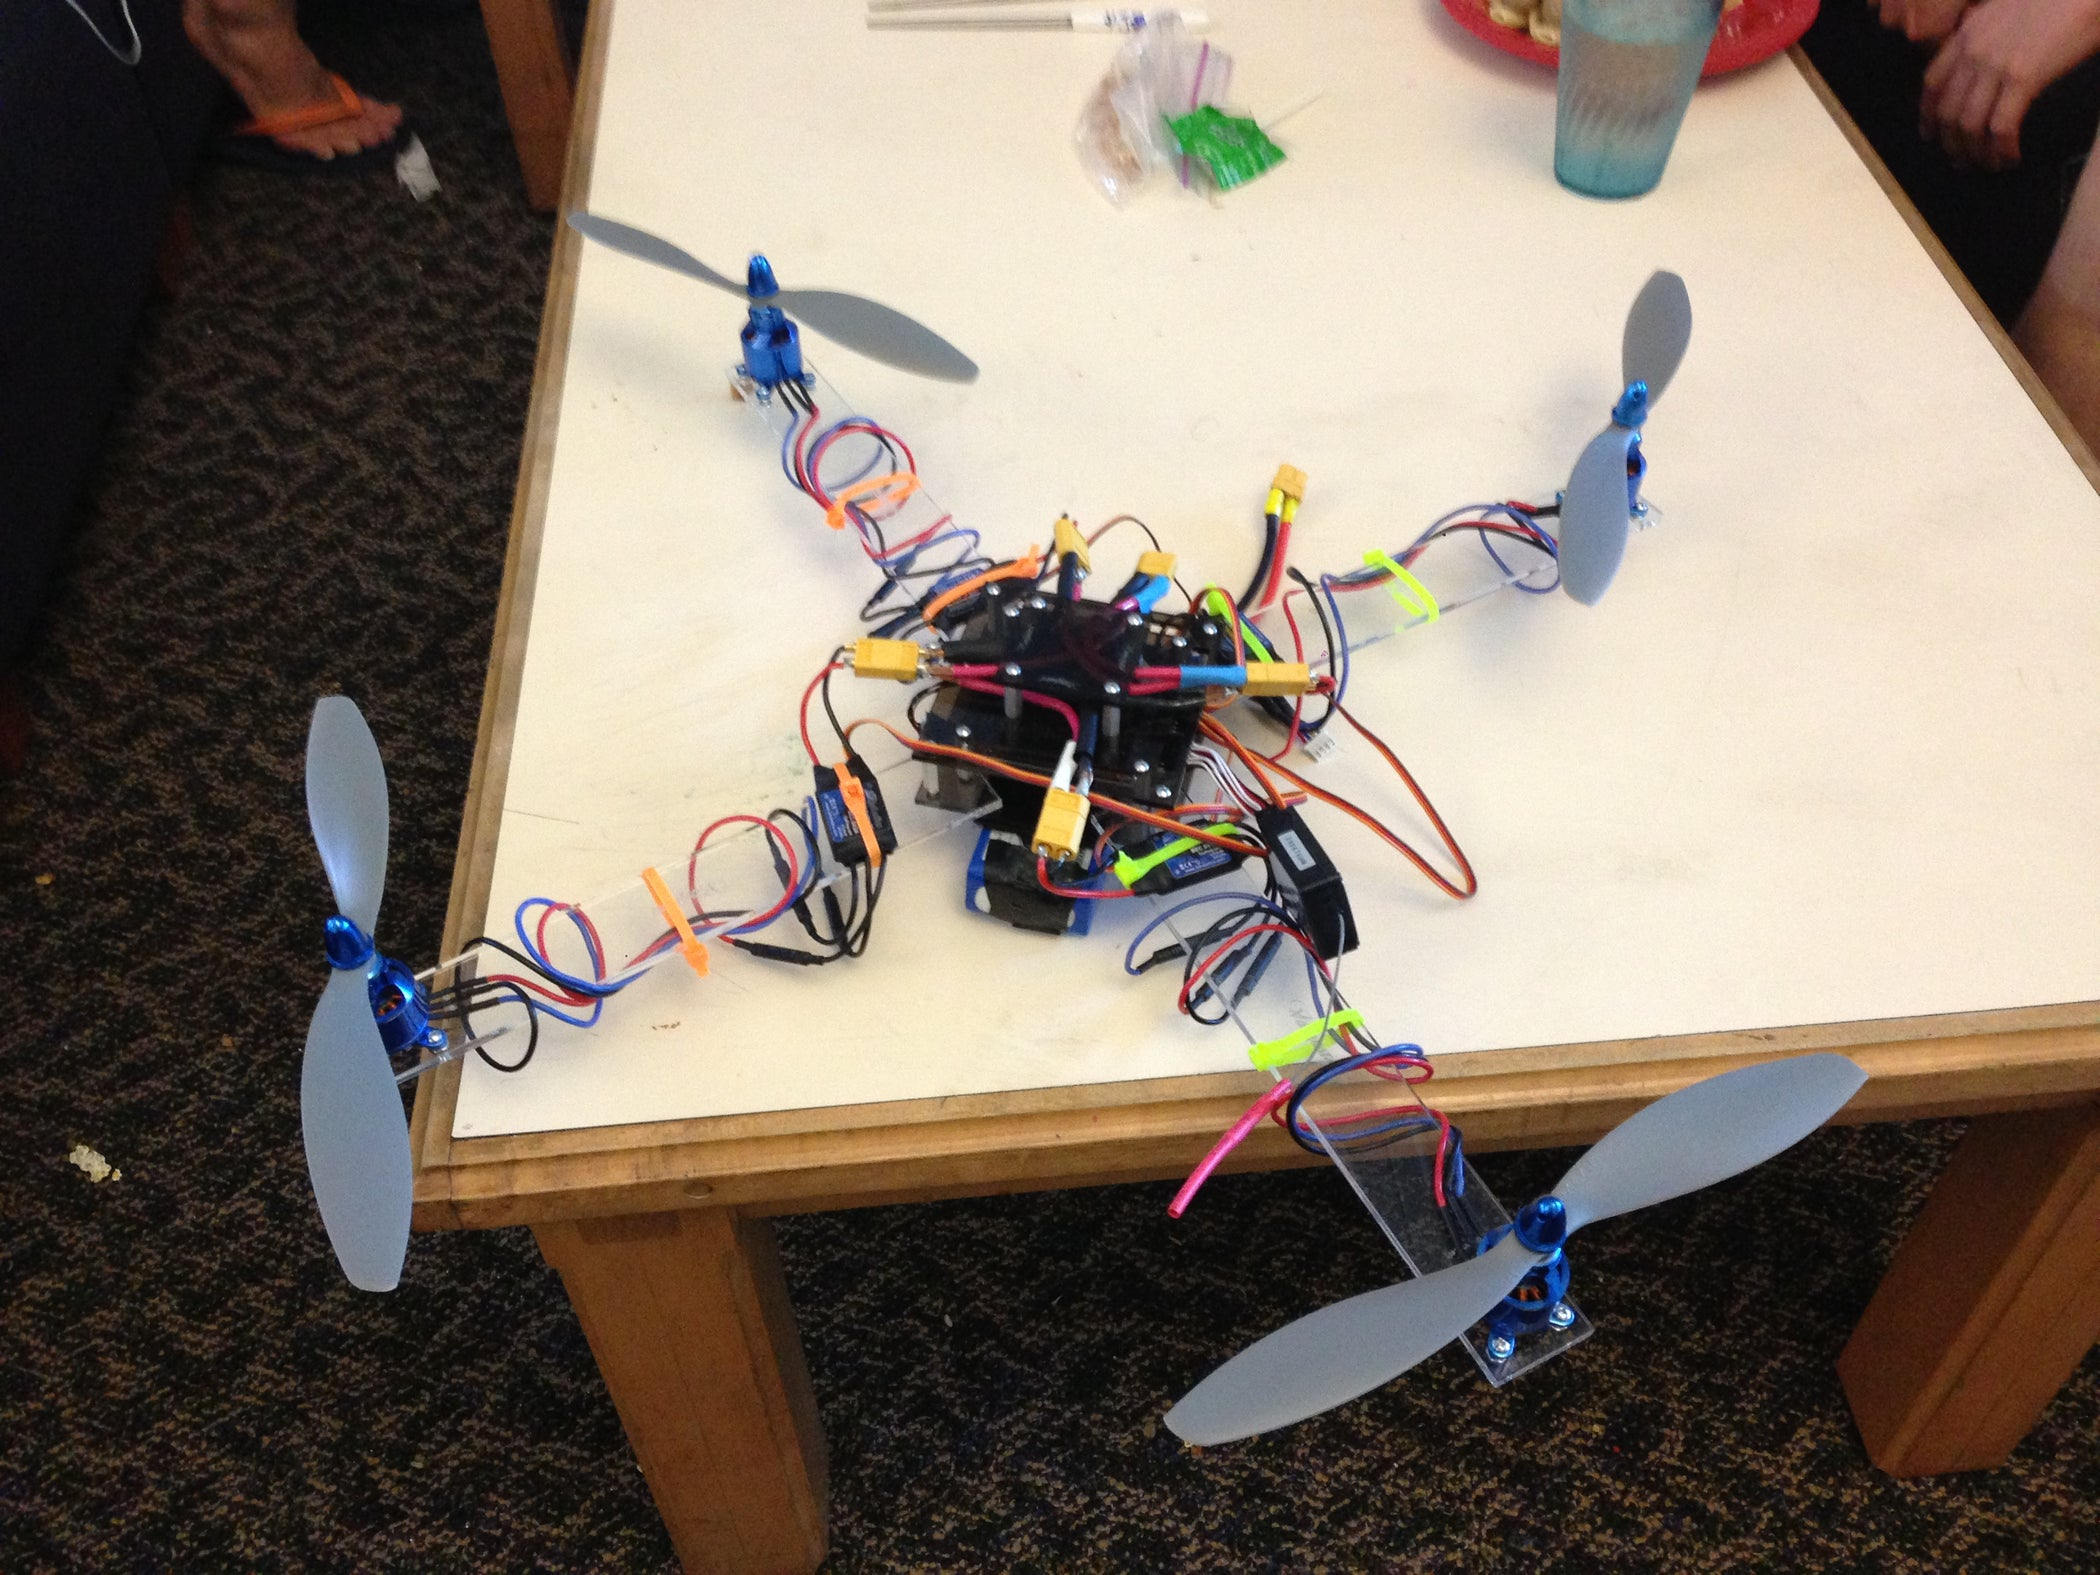 Scratch Build Your Own Quad-copter!